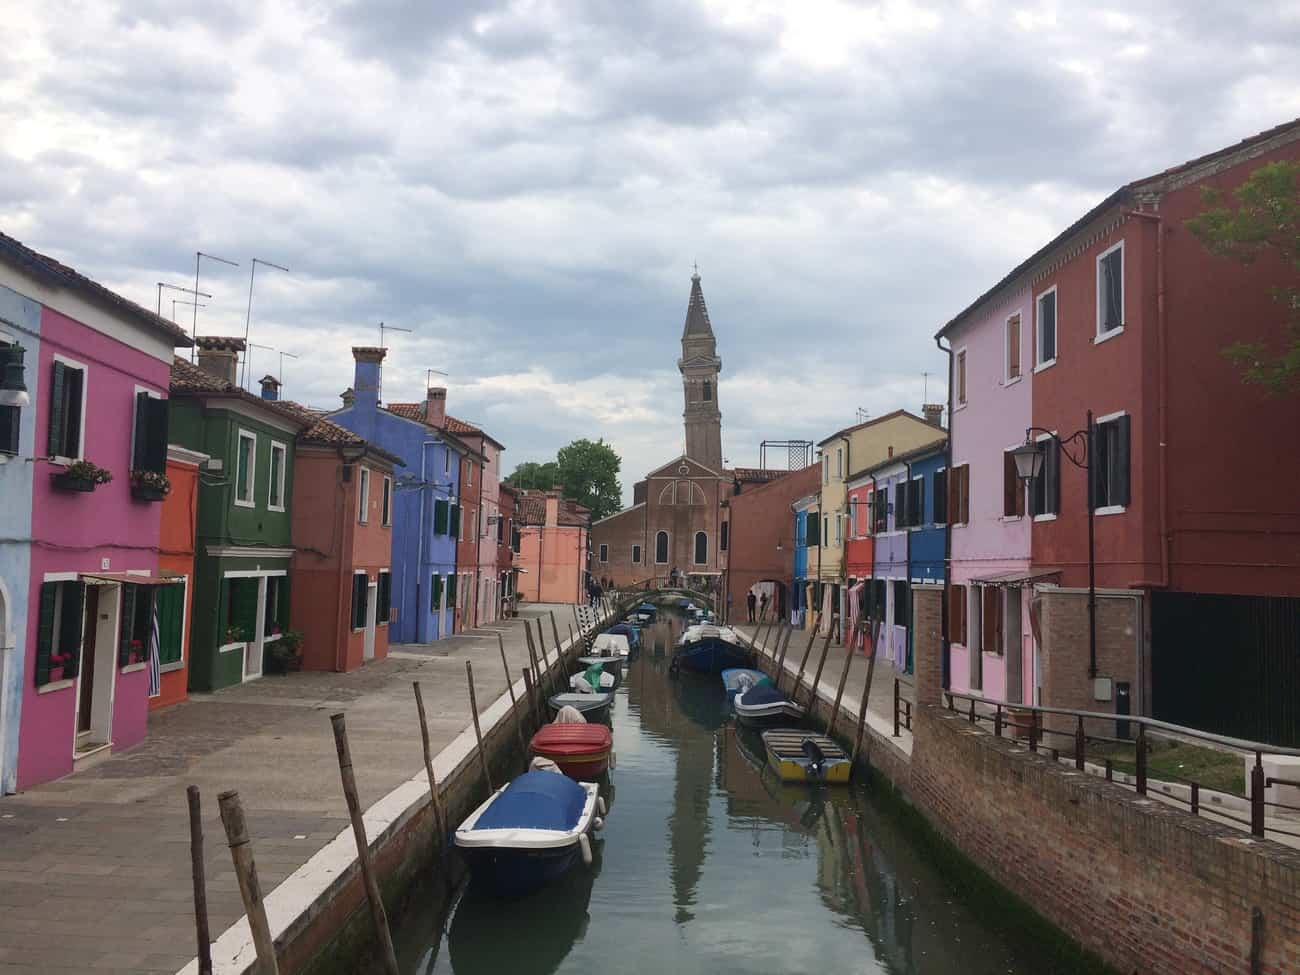 Burano Colourful Streets and Leaning Towerr